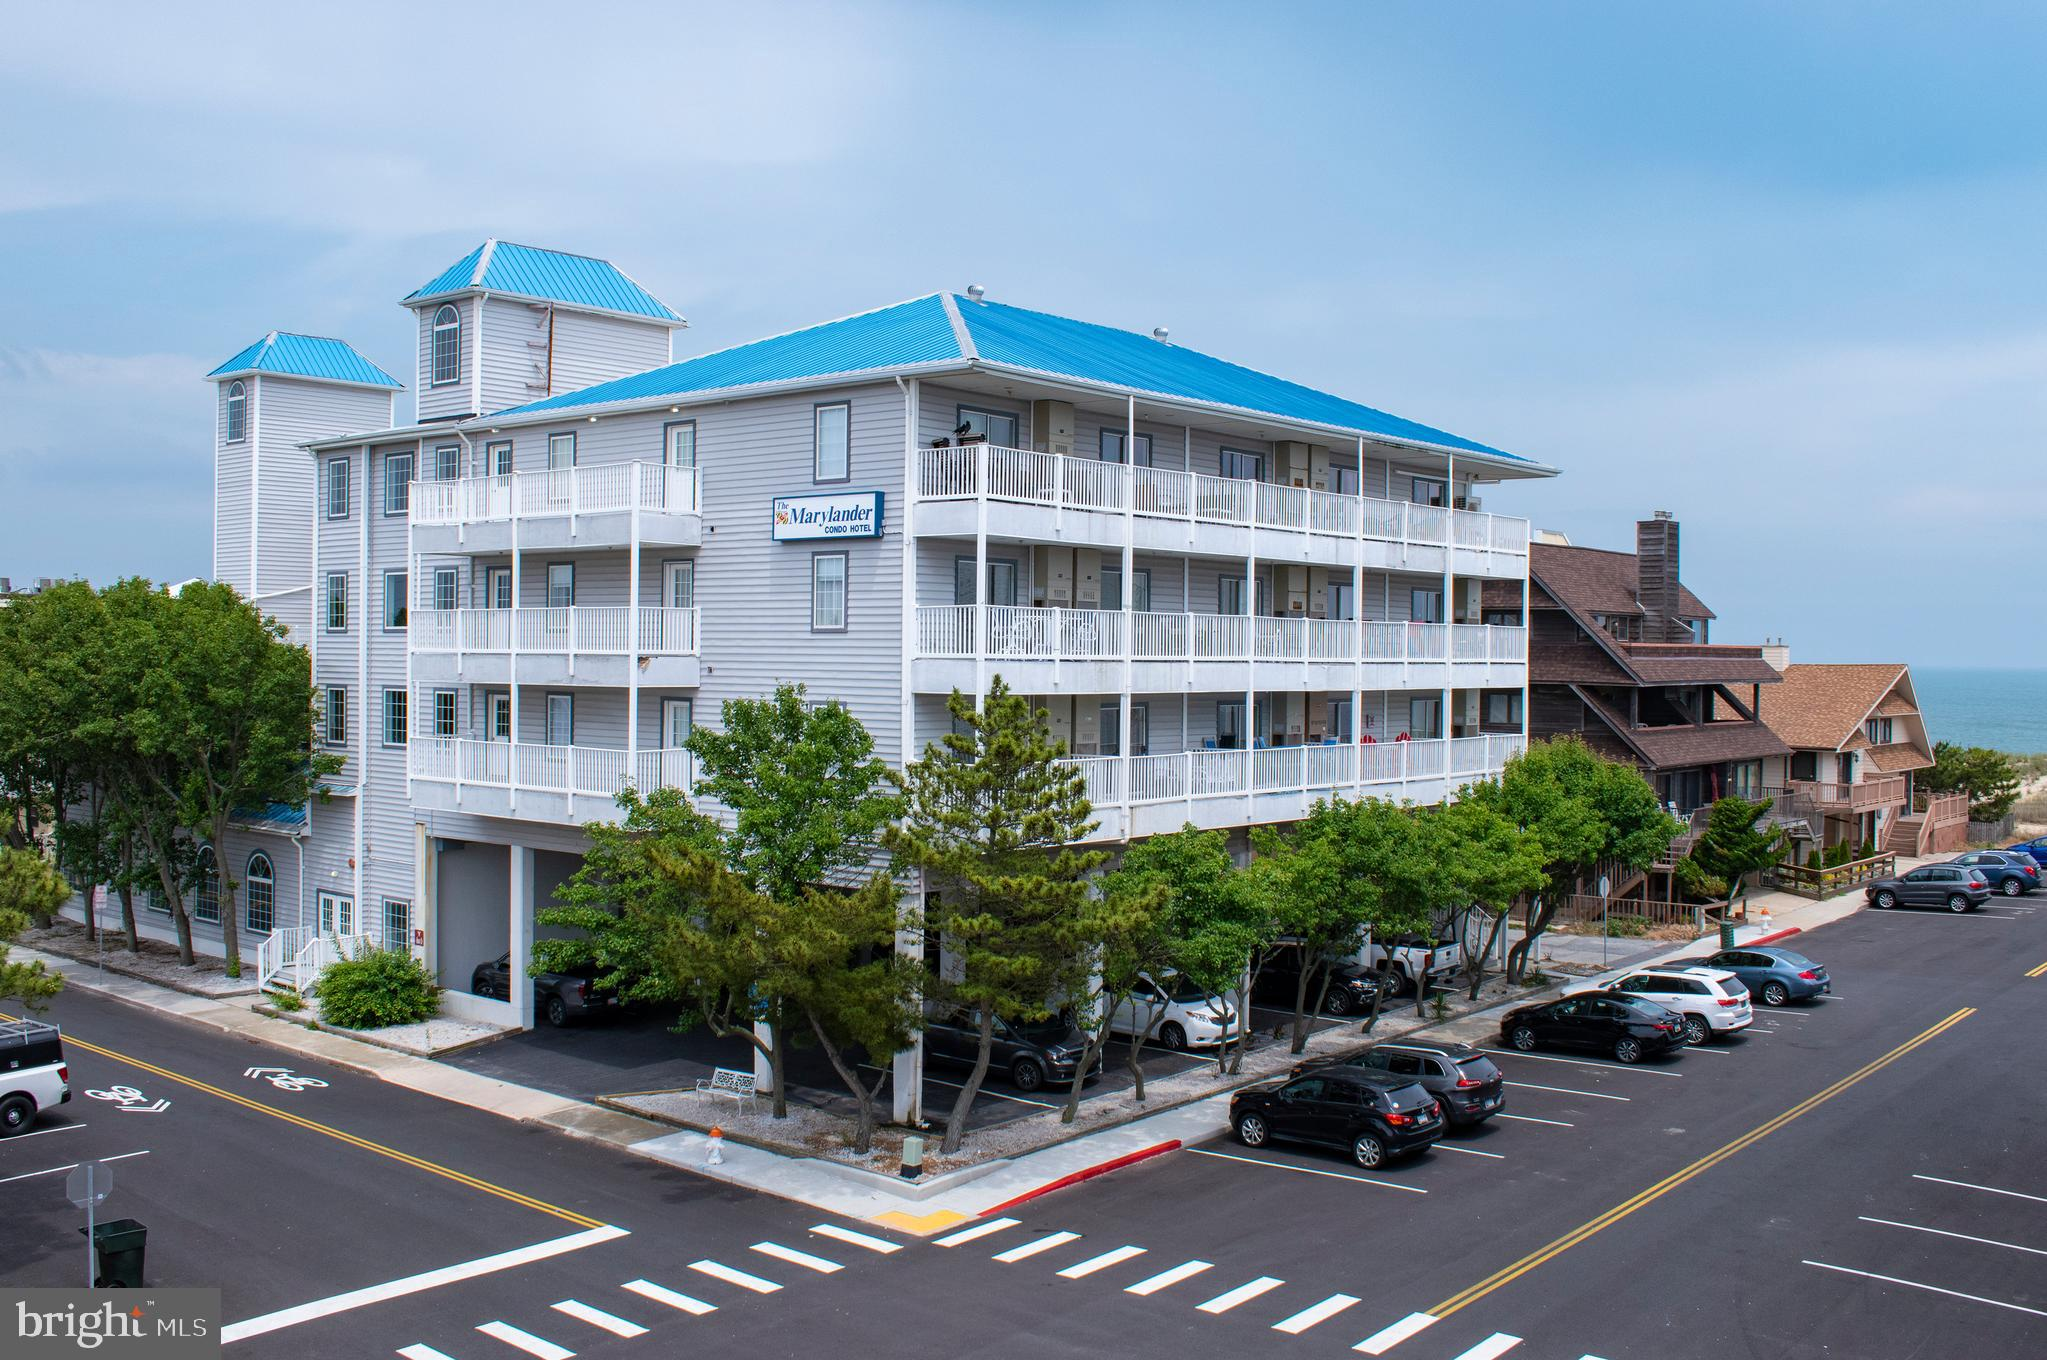 A must-have 1 Bedroom 1 Bath unit with Ocean Views in the quiet North Ocean City! Nicely updated, and well maintained. Sold fully furnished. The Marylander offers a sun deck, indoor pool, game room, and on-site management. The building is located in close proximity to the beach!  And across the street from Northside Park (OC recreation center and sports complex, walk/jog/bike path, crabbing and fishing pier, playground, outdoor concerts, and other events throughout the year including the Winterfest of Lights and Art X). Close to local restaurants and attractions.